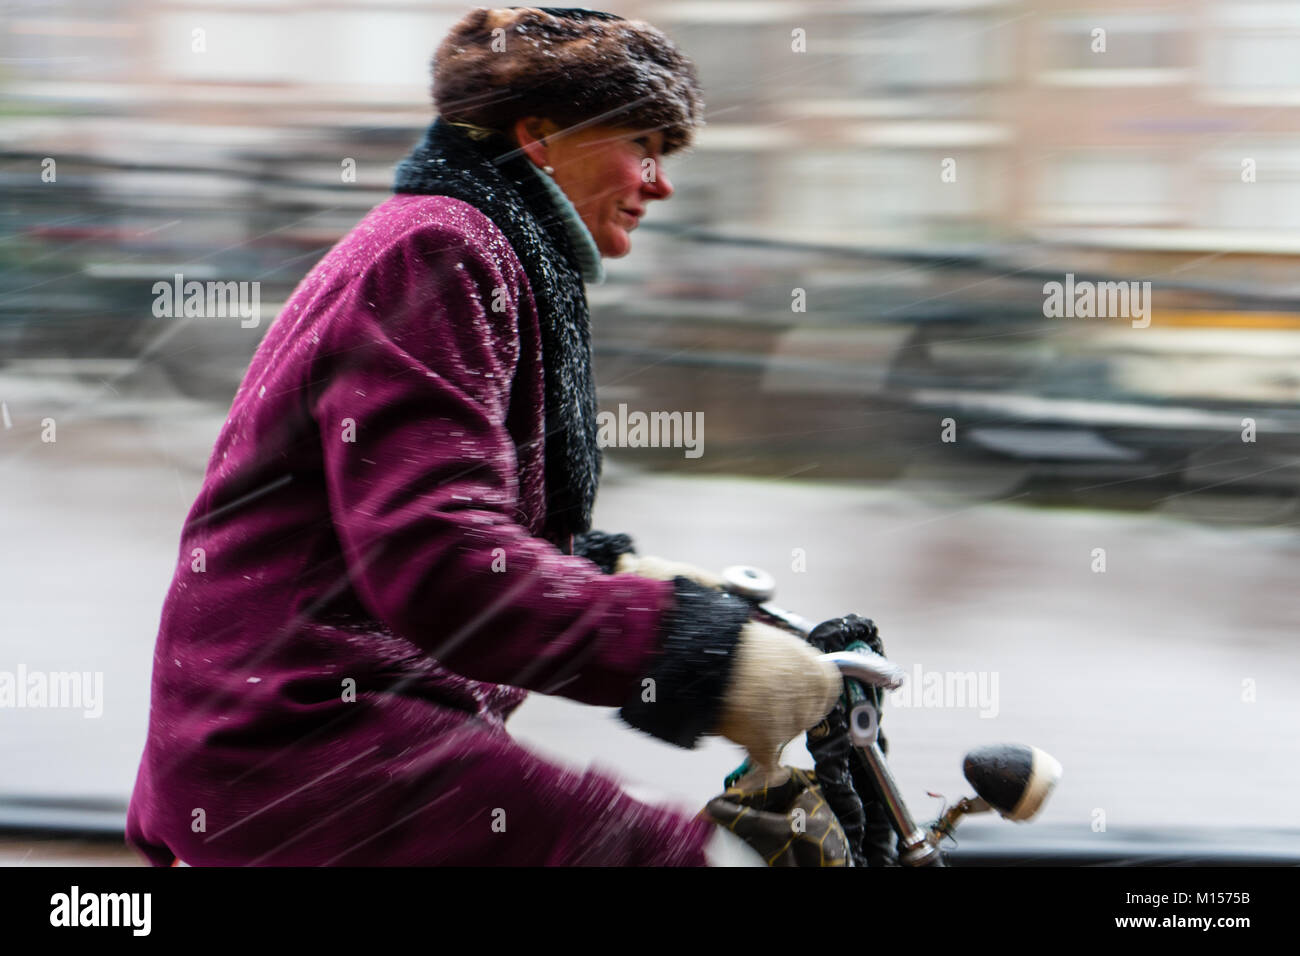 Snowing in Amsterdam - Stock Image